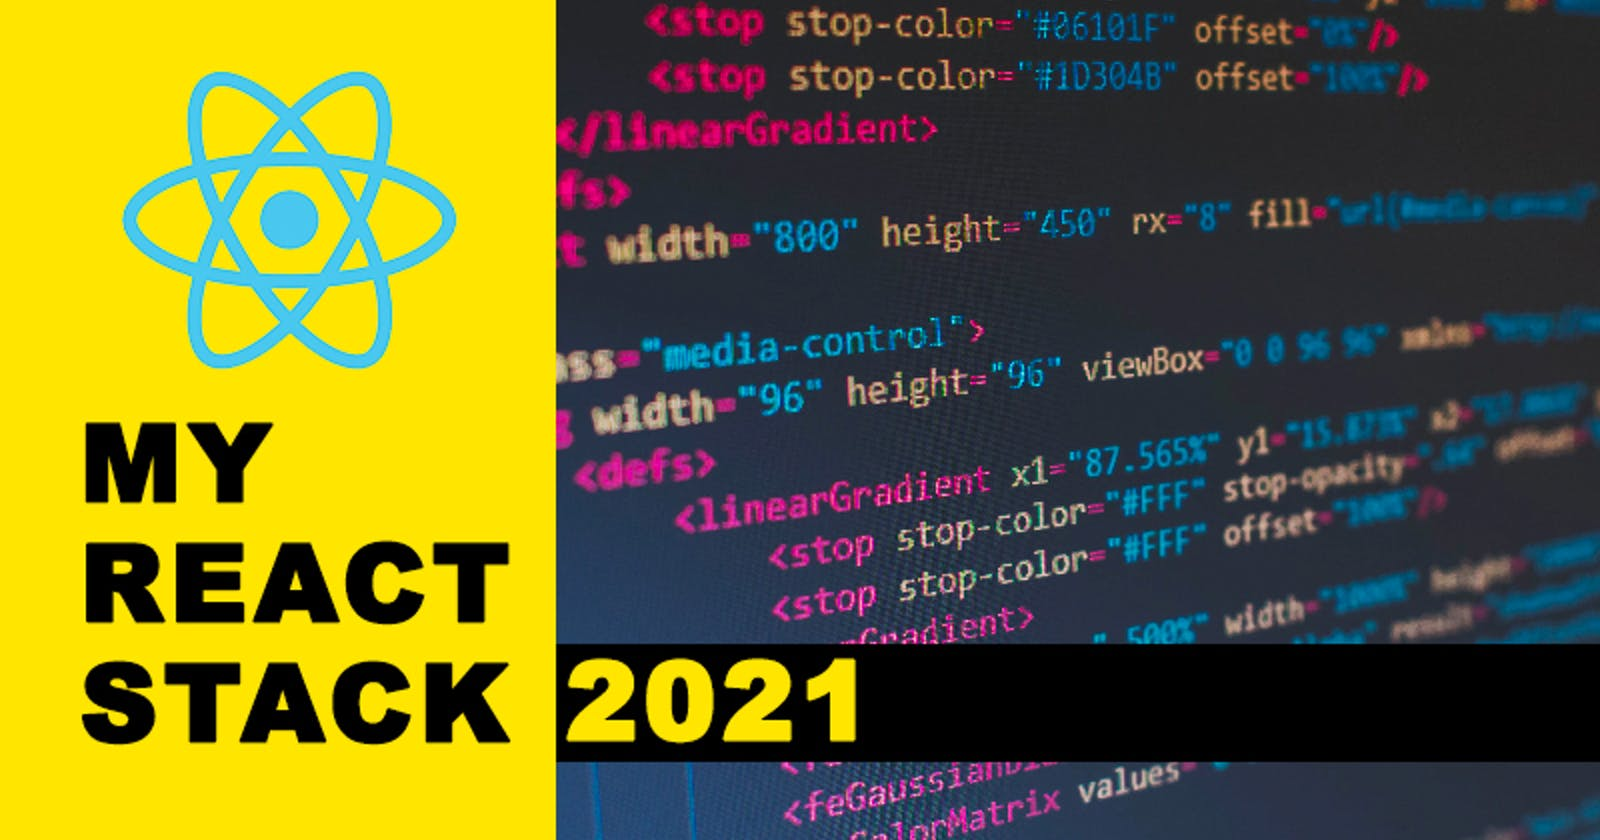 My React Stack for 2021